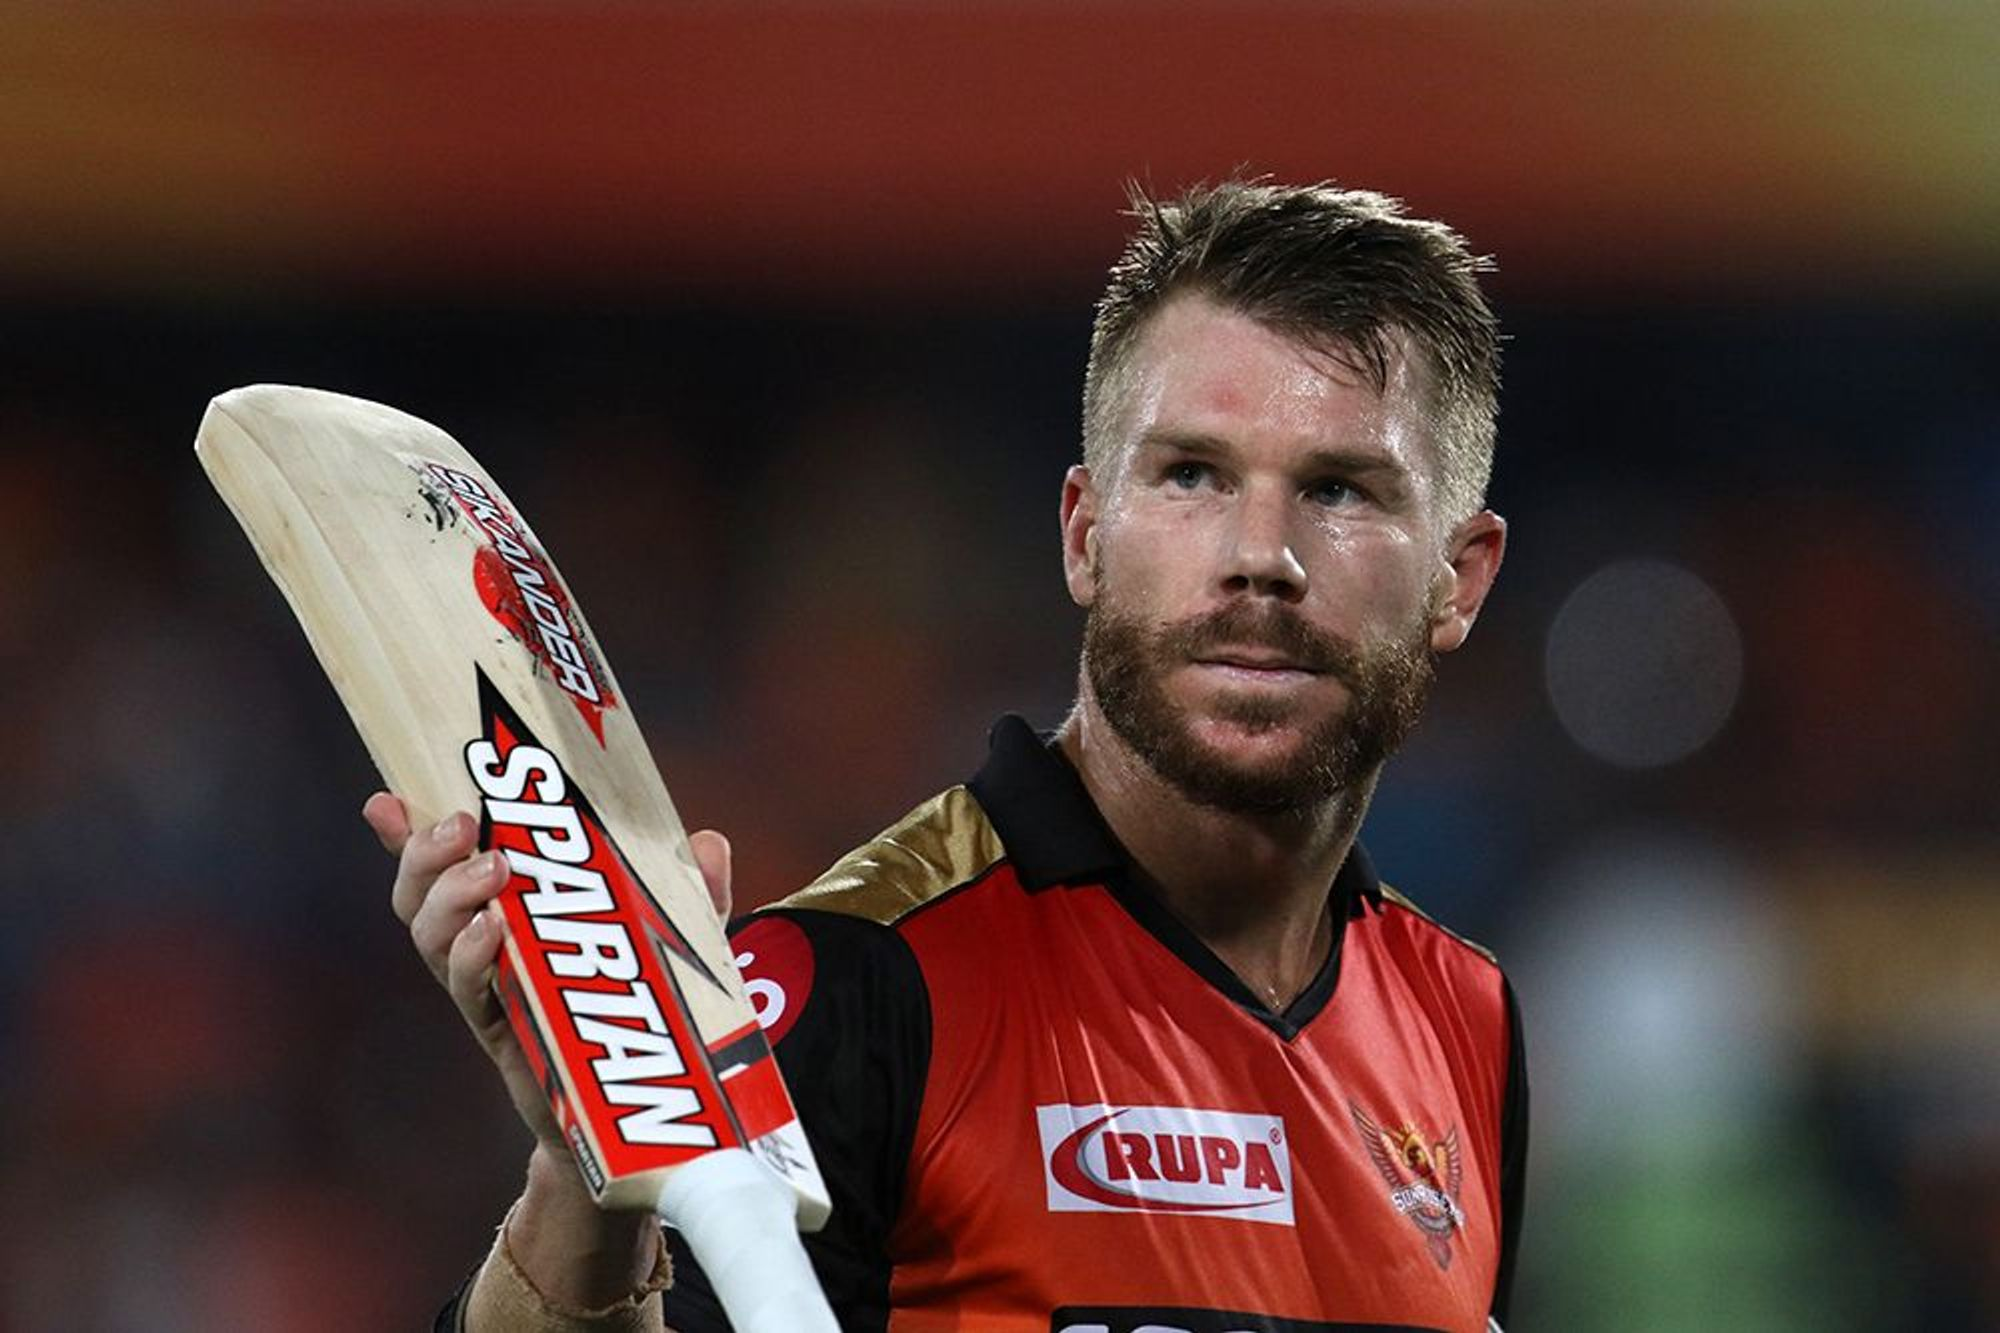 David Warner is reappointed as the Sunriser's Captain